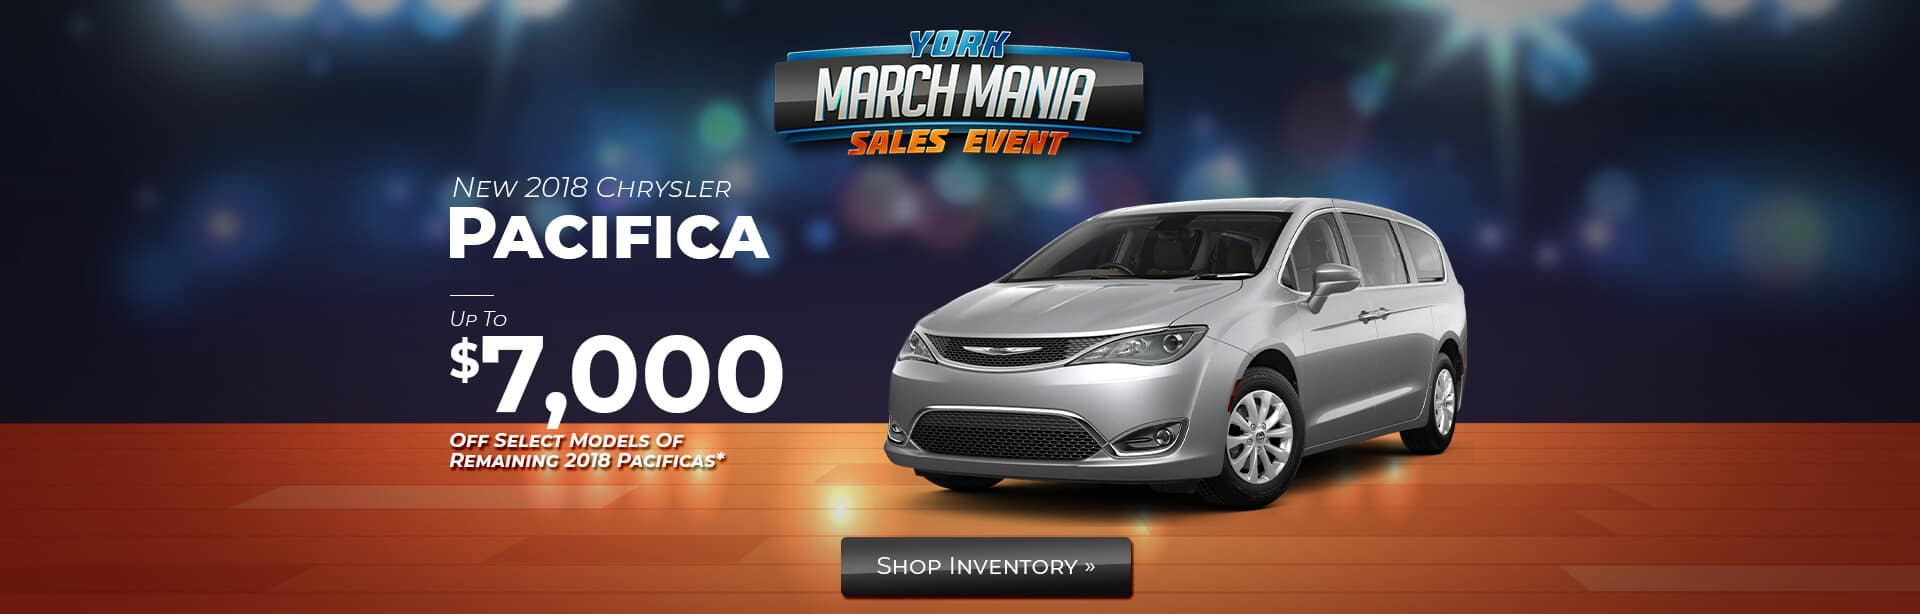 2018 Model End Savings on a Chrysler Pacifica Van near Indianapolis.